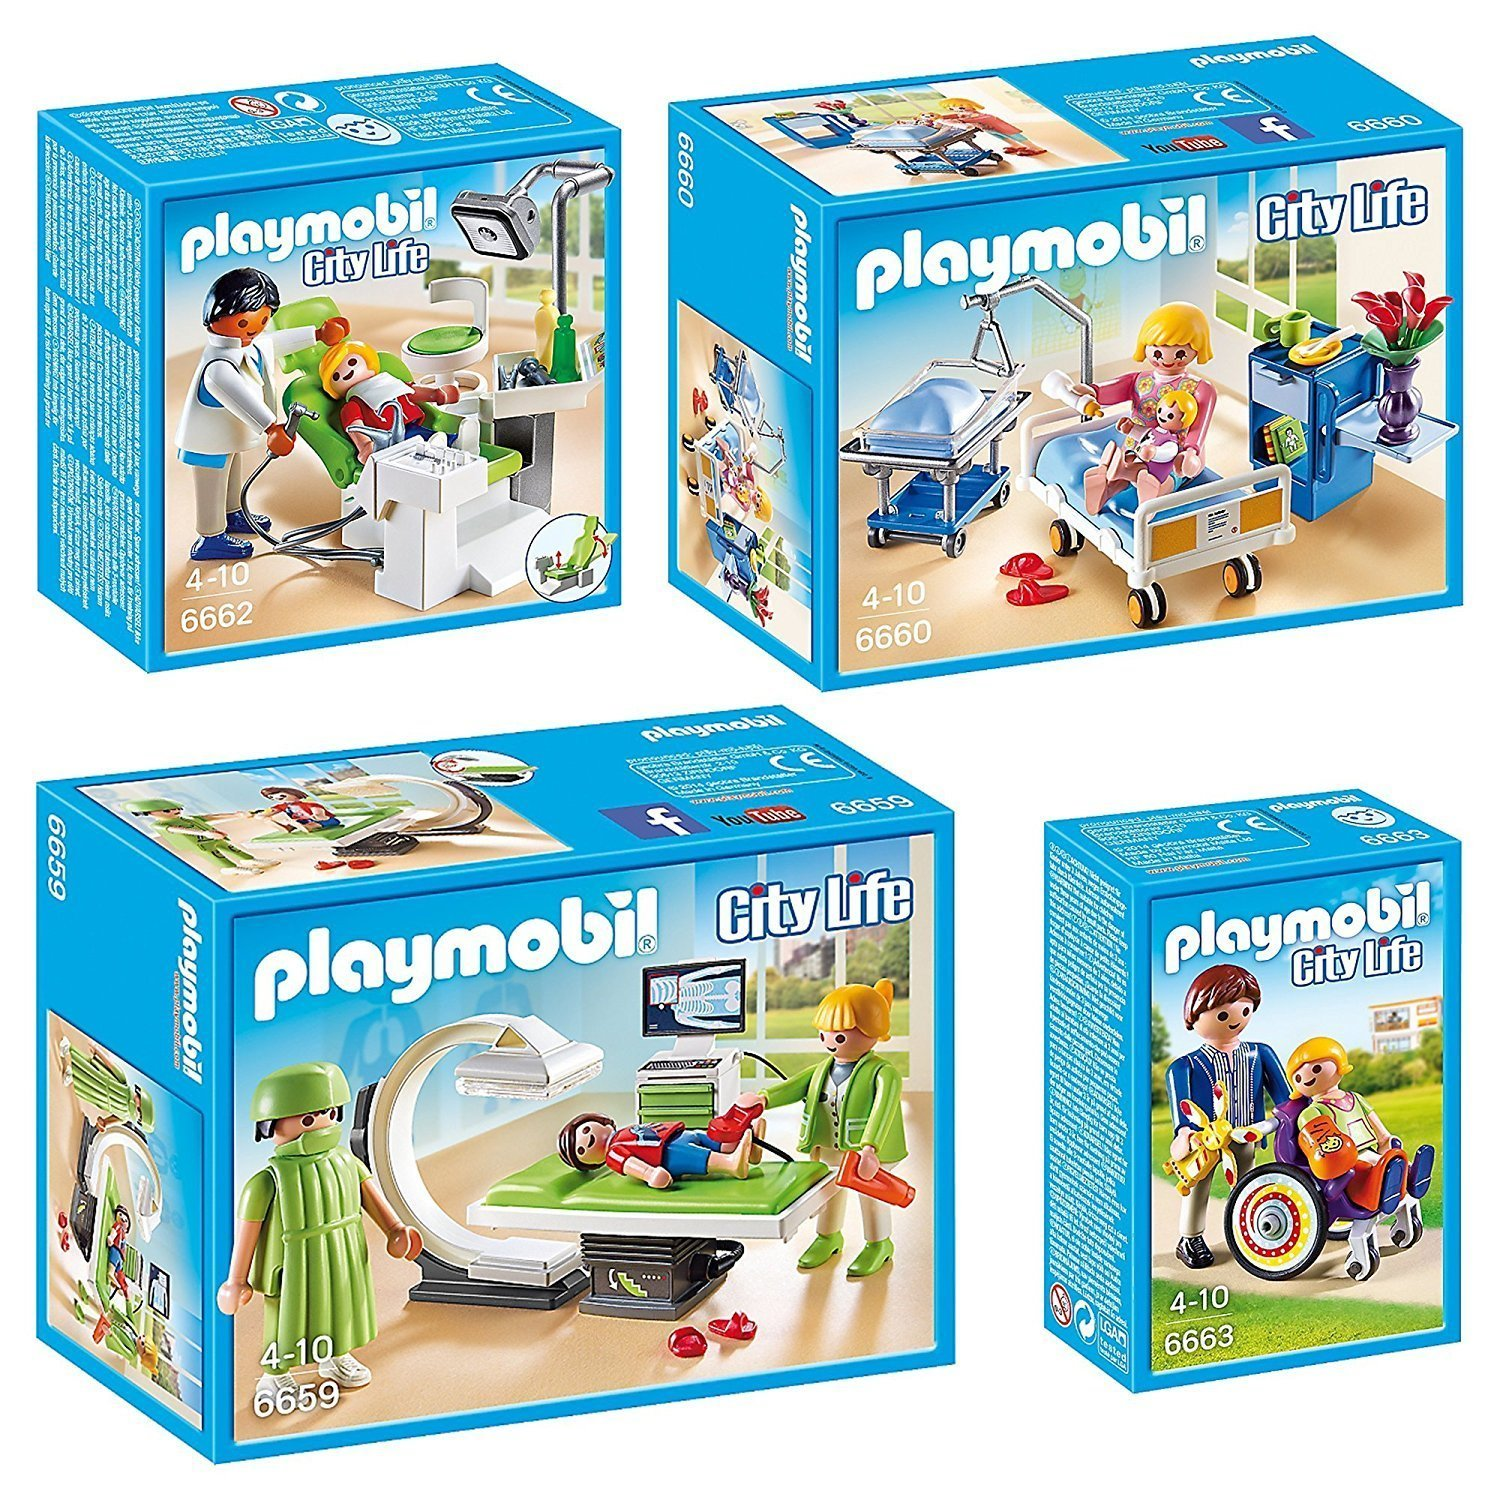 Playmobil City Life 4 pcs. Set 6659 6660 6662 6663 X-Ray Room + Dentist with Patient + Child in Wheelchair + Child in Wheelchair